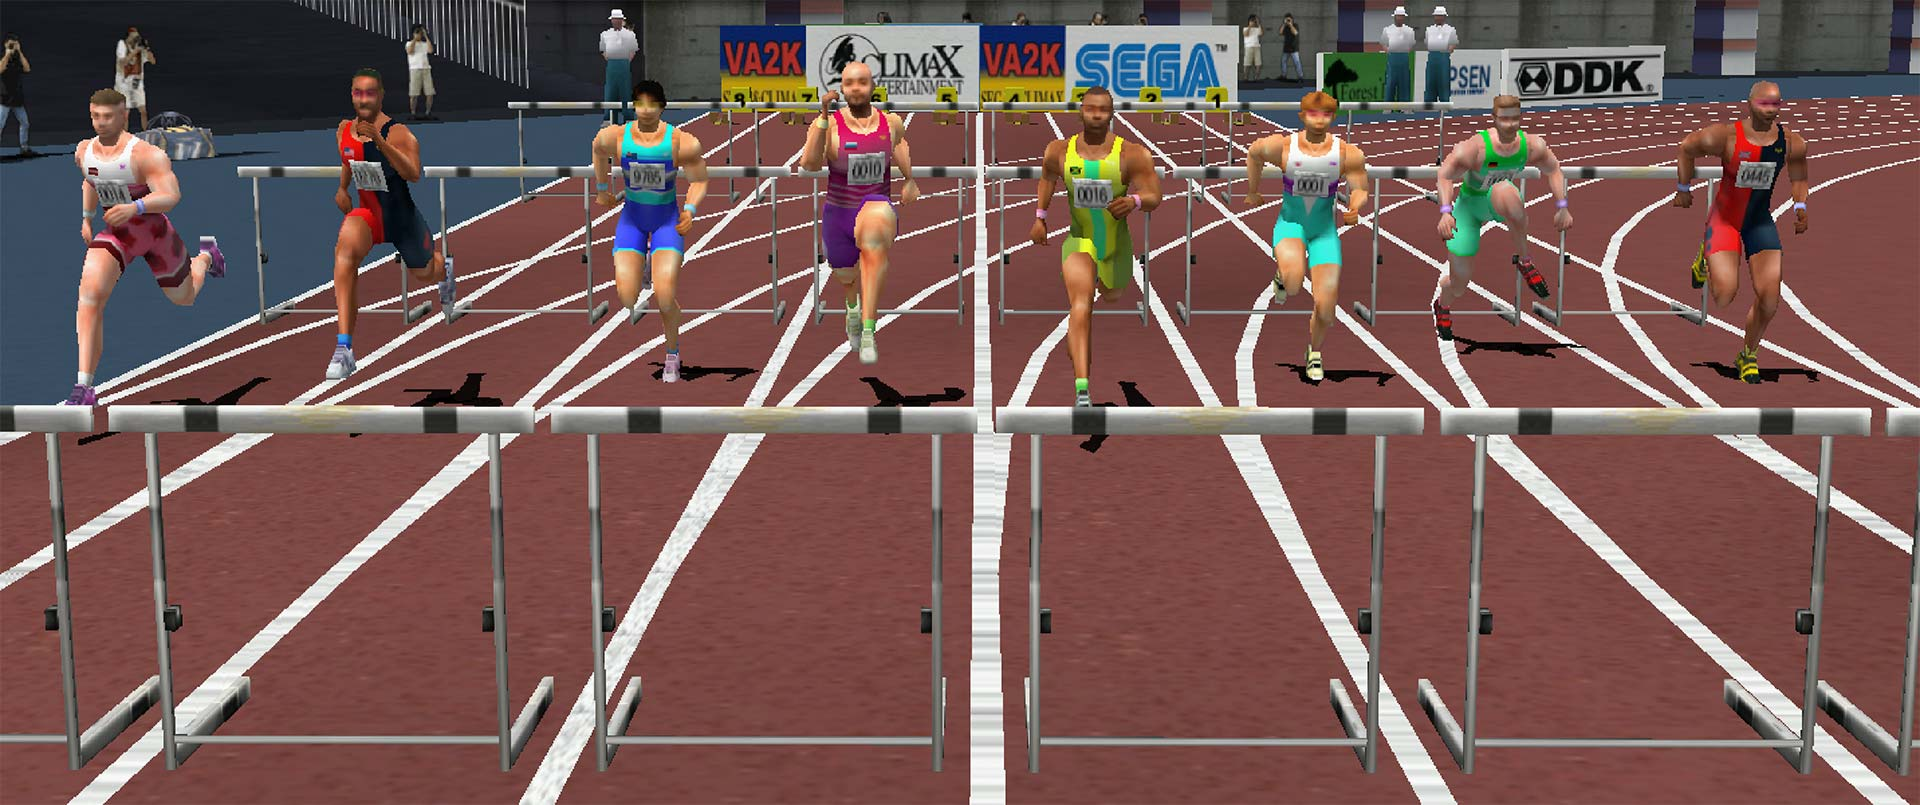 Virtua Athlete 2K hurdles